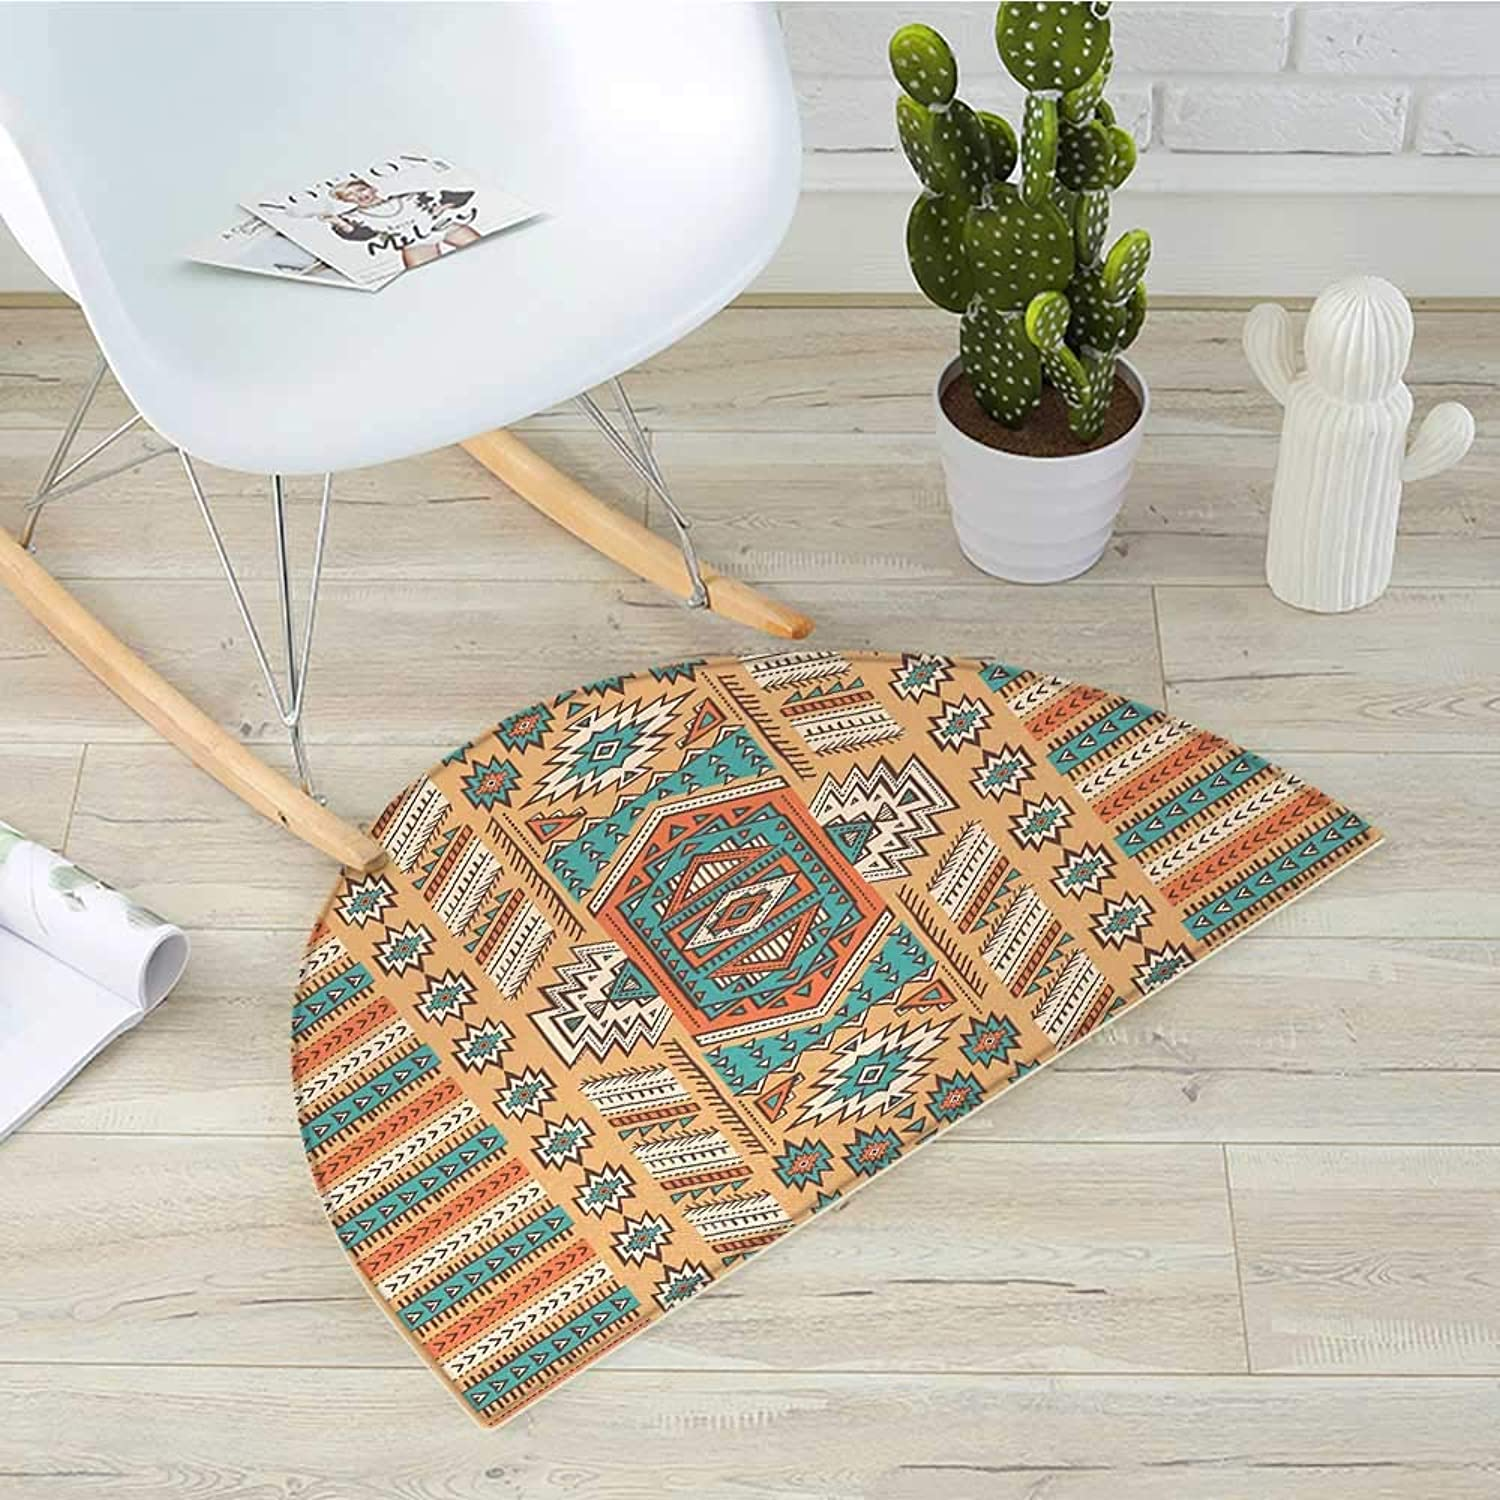 Tribal Half Round Door mats Ethnic Aztec Secret Tribe Pattern in Native American Bohemian Style Bathroom Mat H 43.3  xD 64.9  Apricot orange and Teal